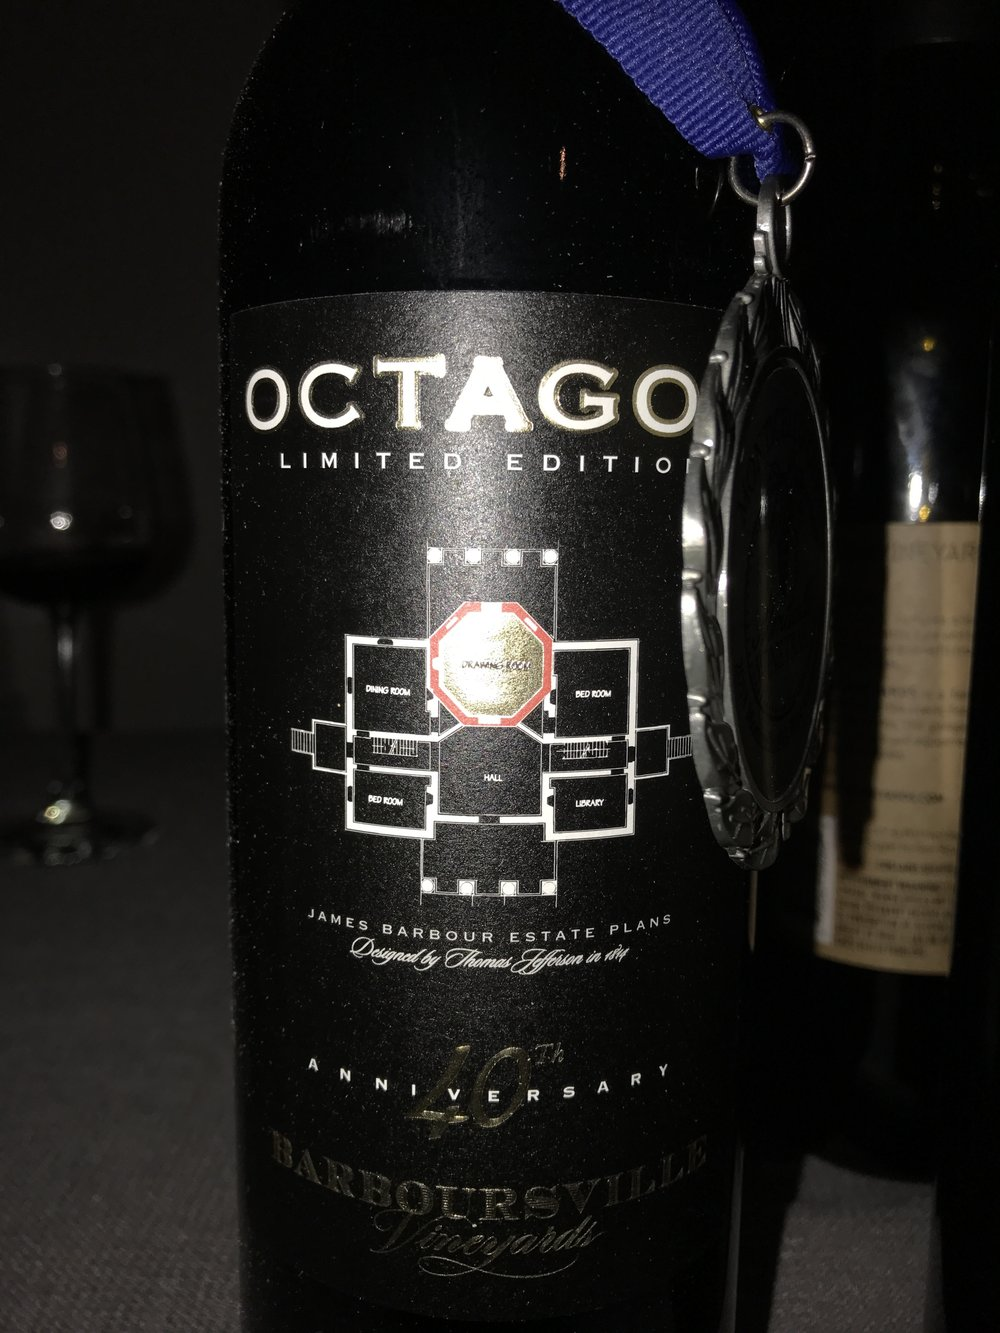 - Octagon 40th anniversary limited edition was present (Barboursville Vineyards)